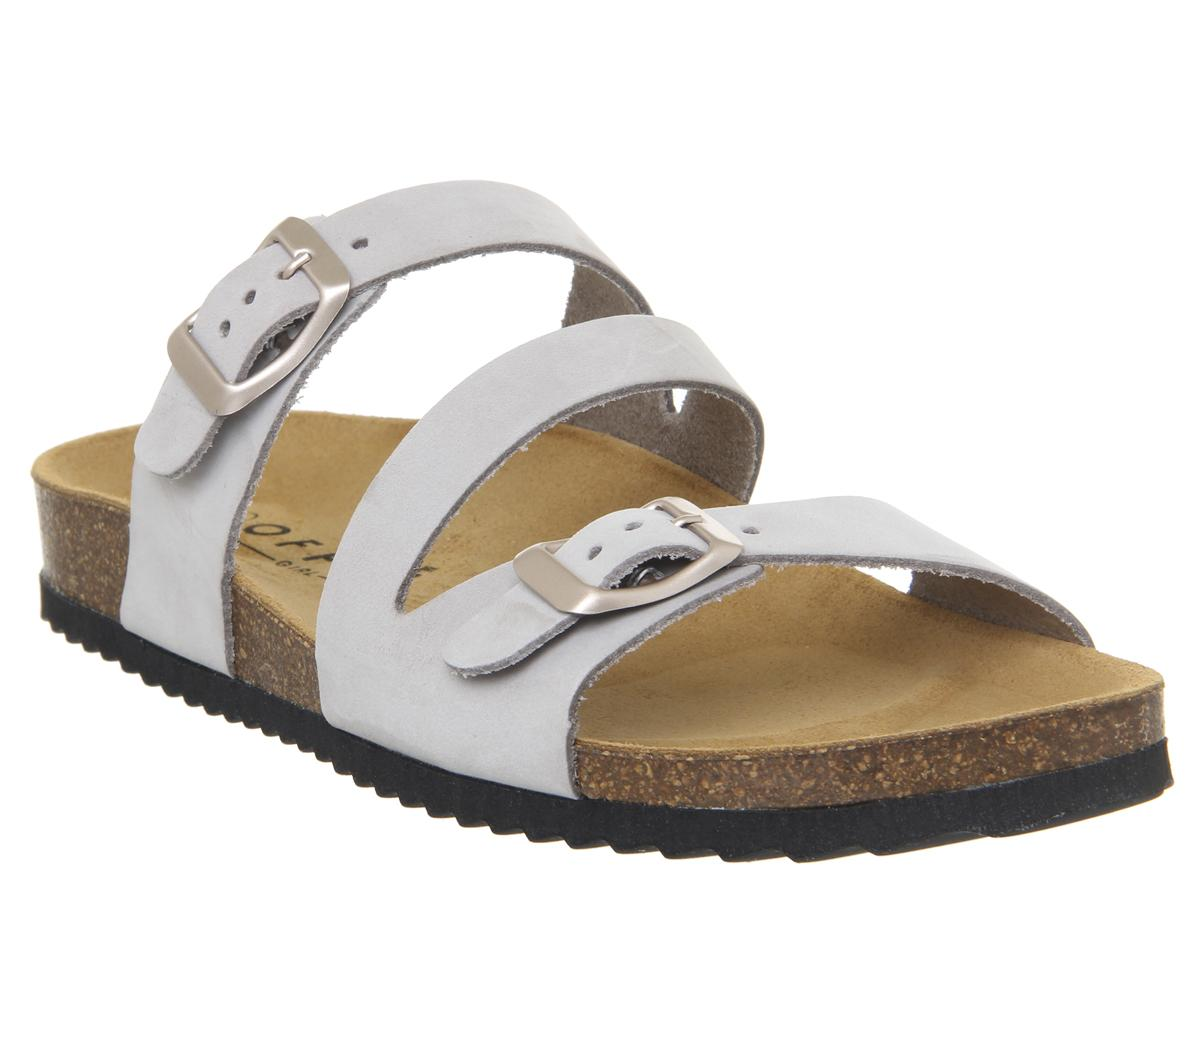 Womens Office Bounty Cross Strap Footbed Sandals Grey Nubuck Rose Gold Buckles S